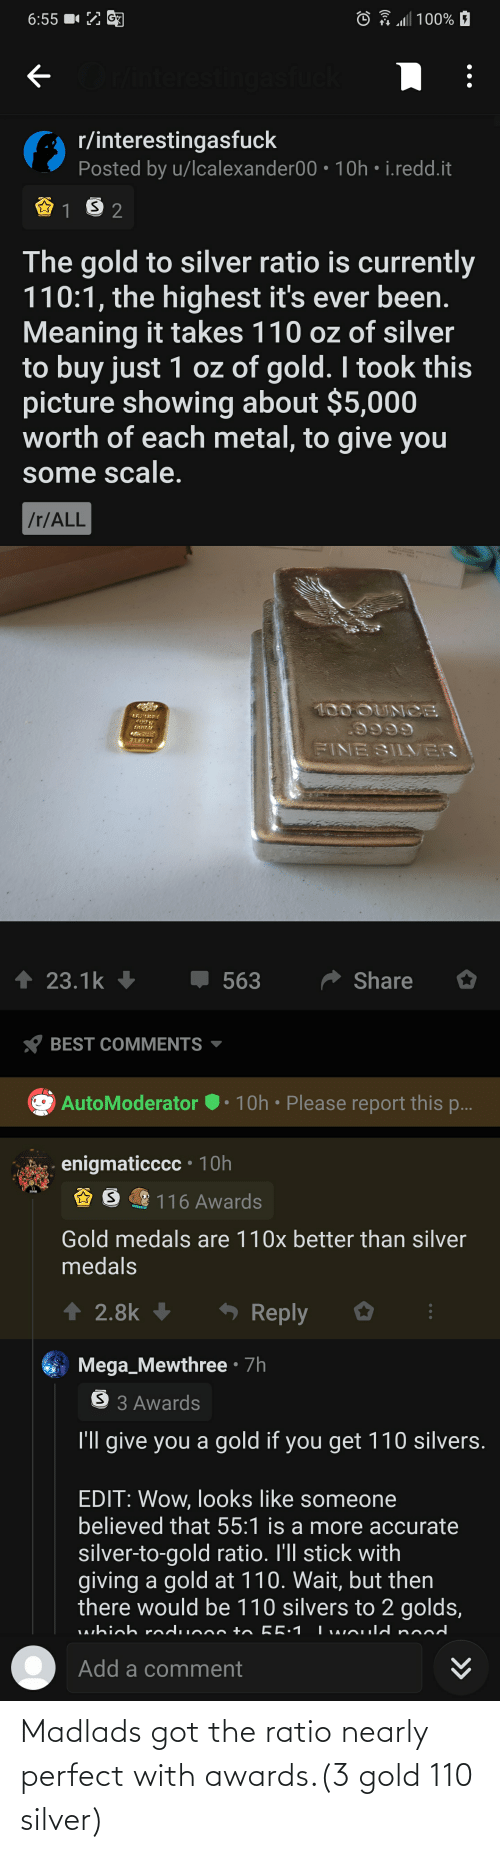 Silver: Madlads got the ratio nearly perfect with awards.(3 gold 110 silver)